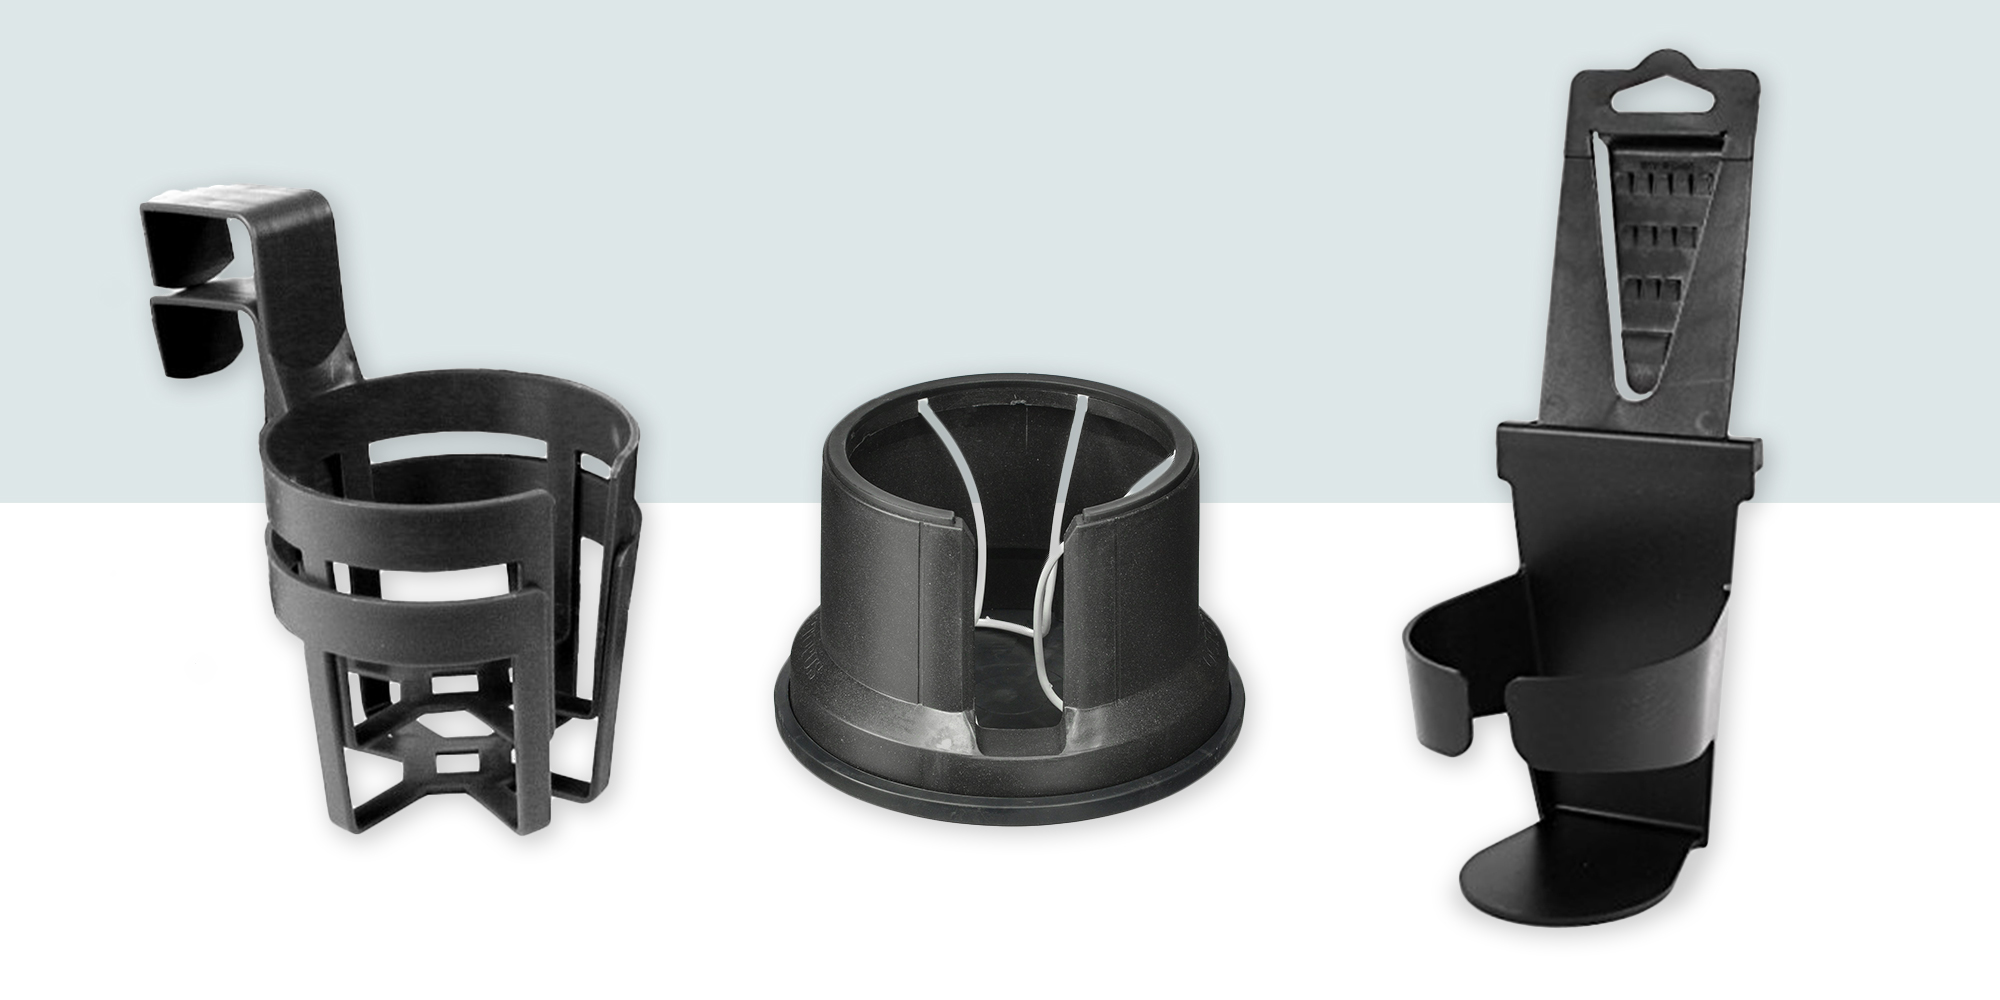 7 Best Car Cup Holders In 2018 Coffee Cup Holders For